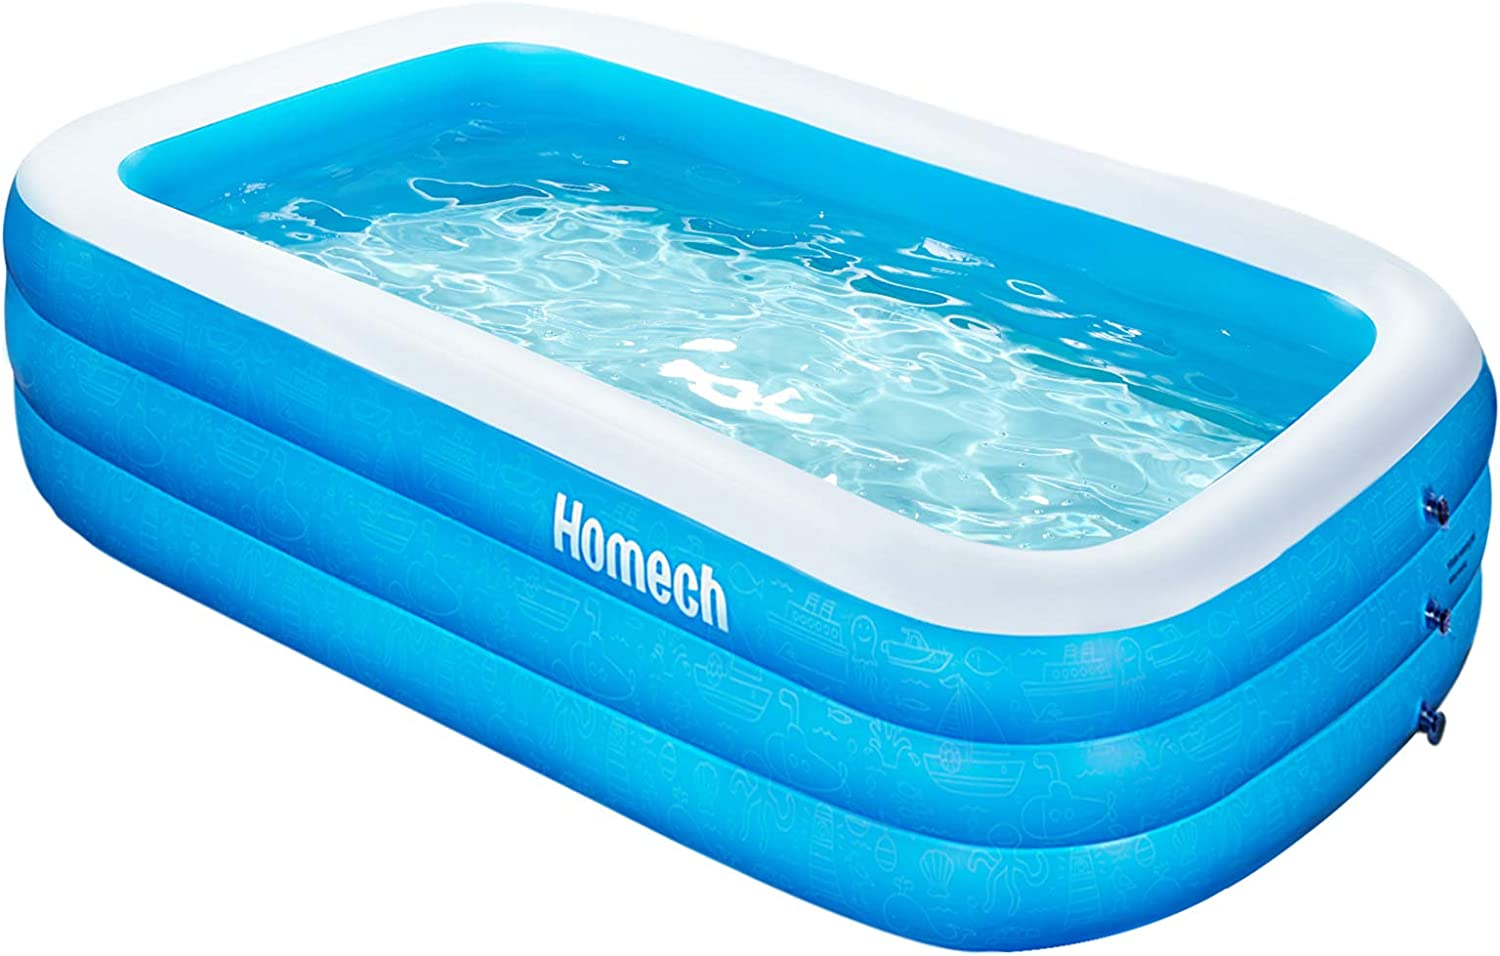 Summer Safety Non-Slip Outdoor Bathing Pool Jsdoin Inflatable Pool Foldable Kids Paddling Pool with Air Pump Outdoor Swimming Pool for Backyard Home Garden